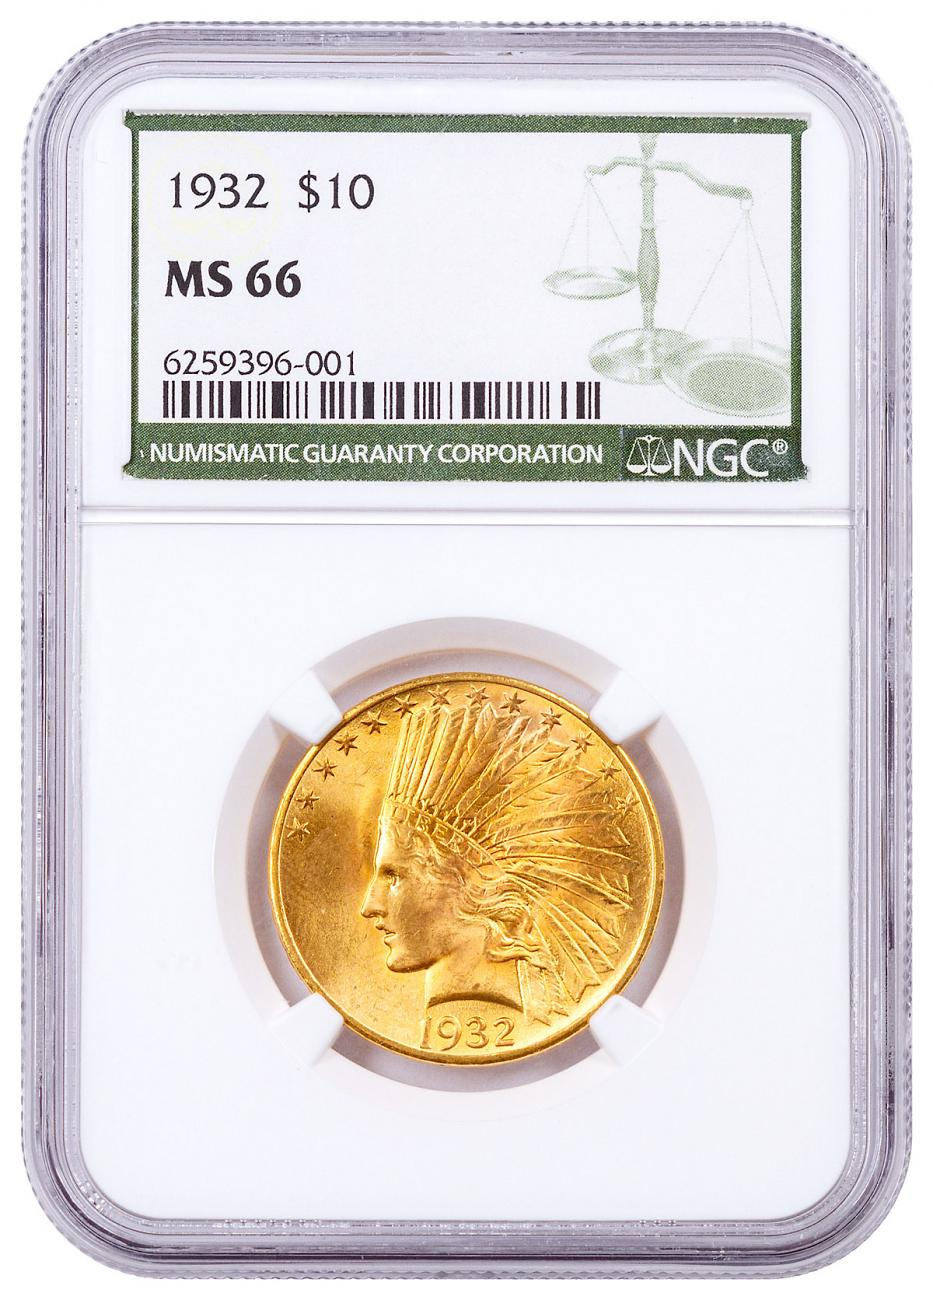 1932-P Indian Head With Motto $10 Gold Eagles NGC MS66 Green Label